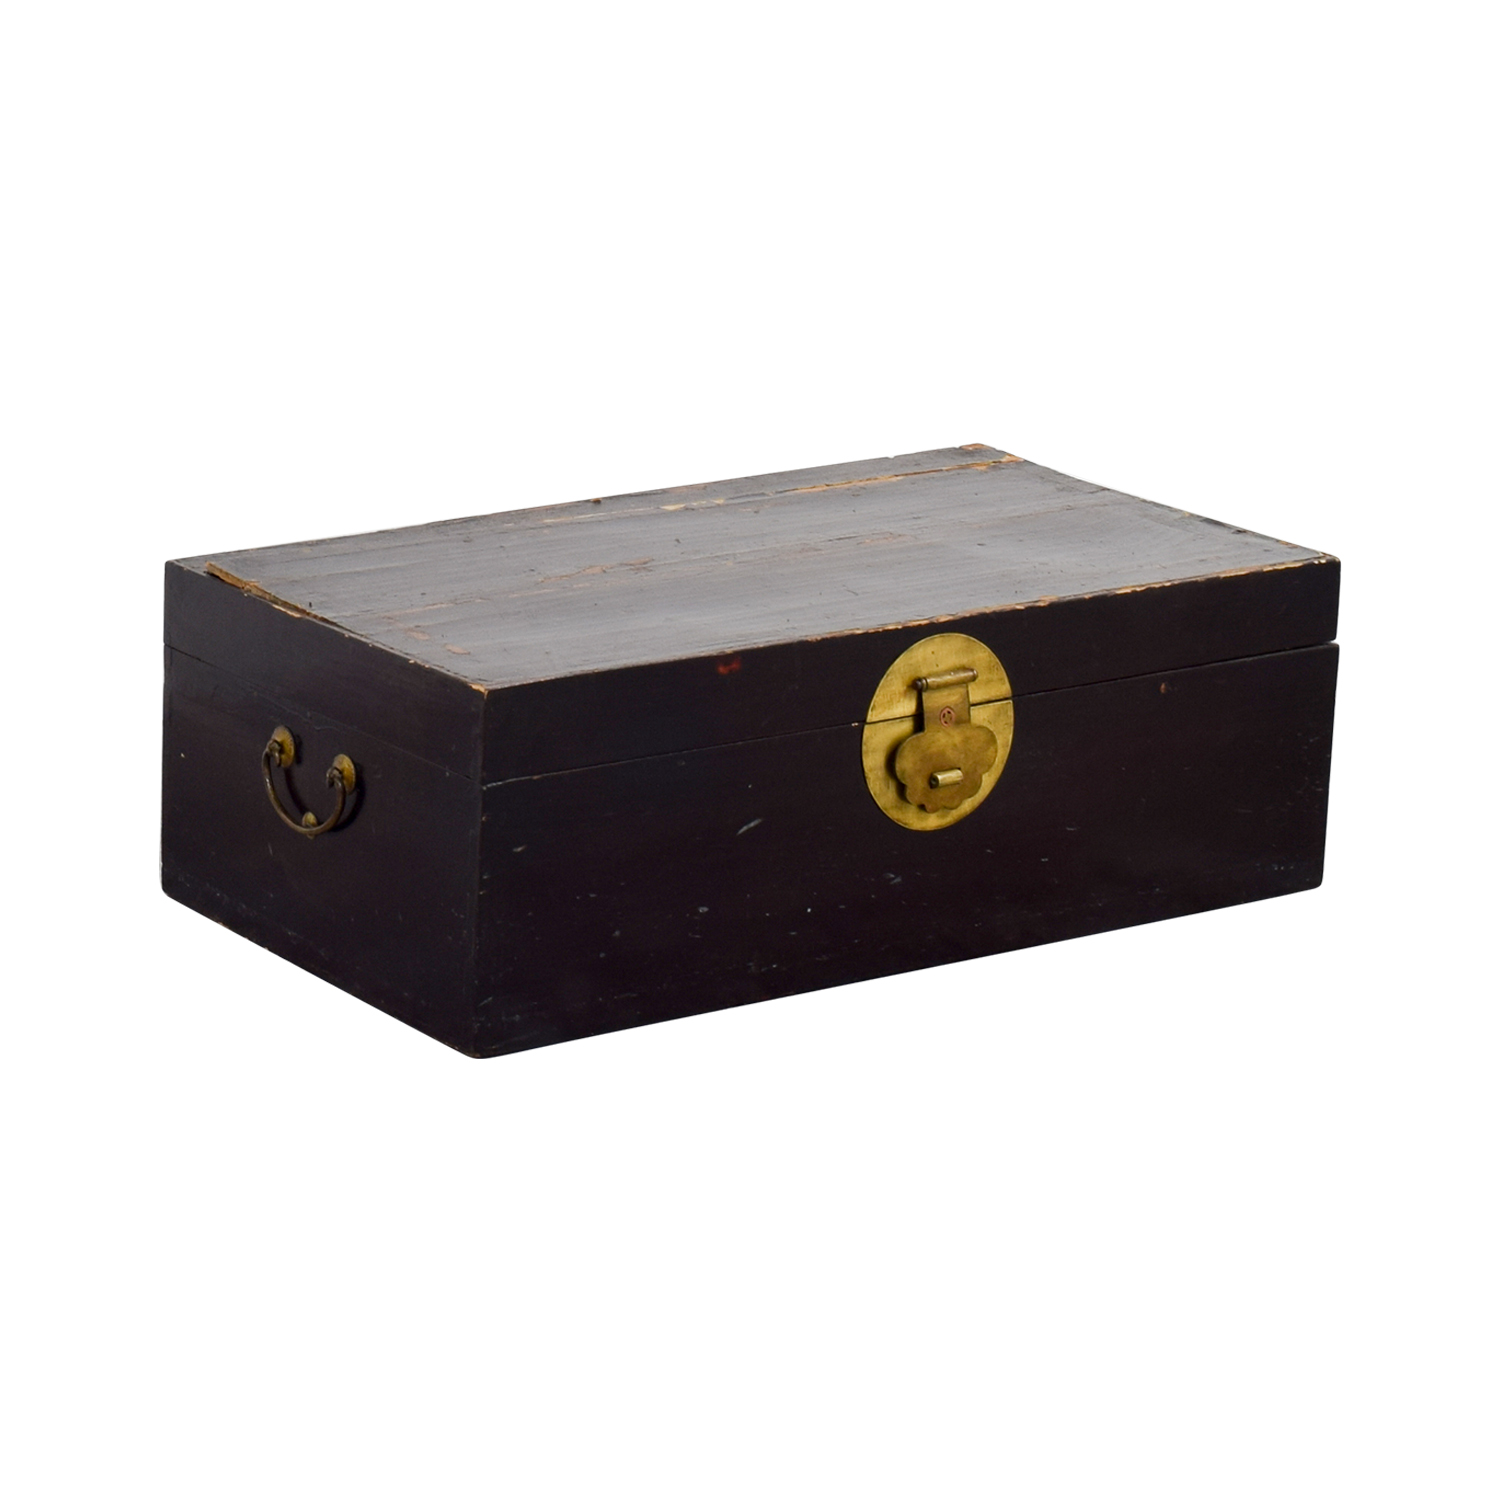 Antique Chinese Hope Chest with Brass Accent price